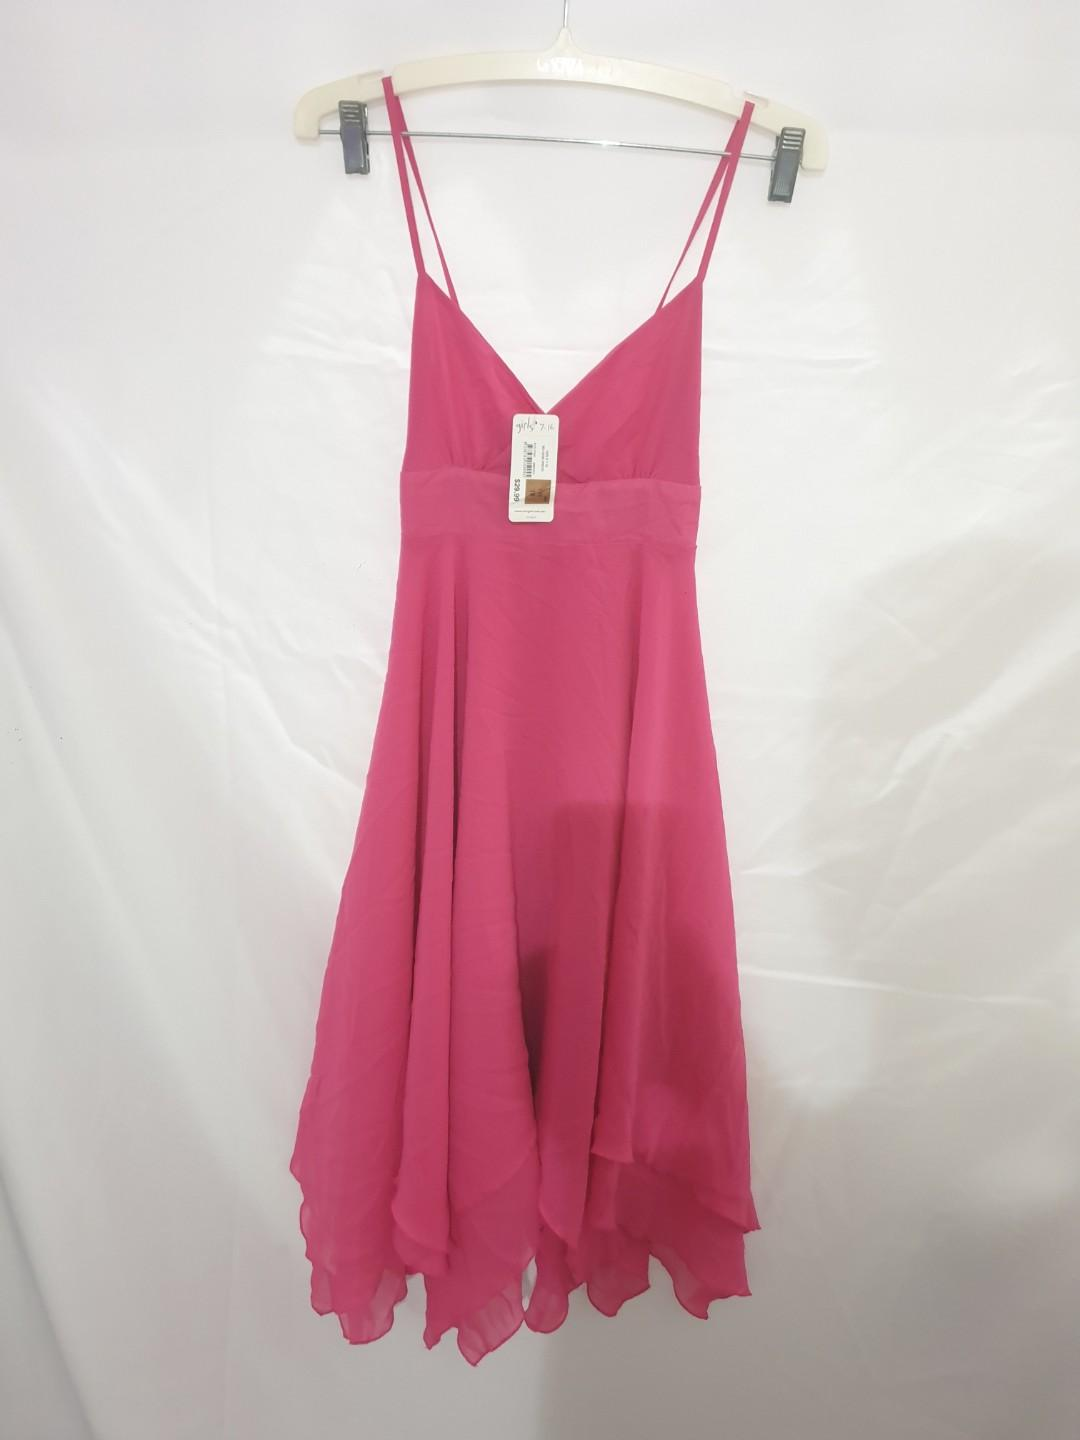 NEW! girl's size 16 could fit 6-8 women's dress #4